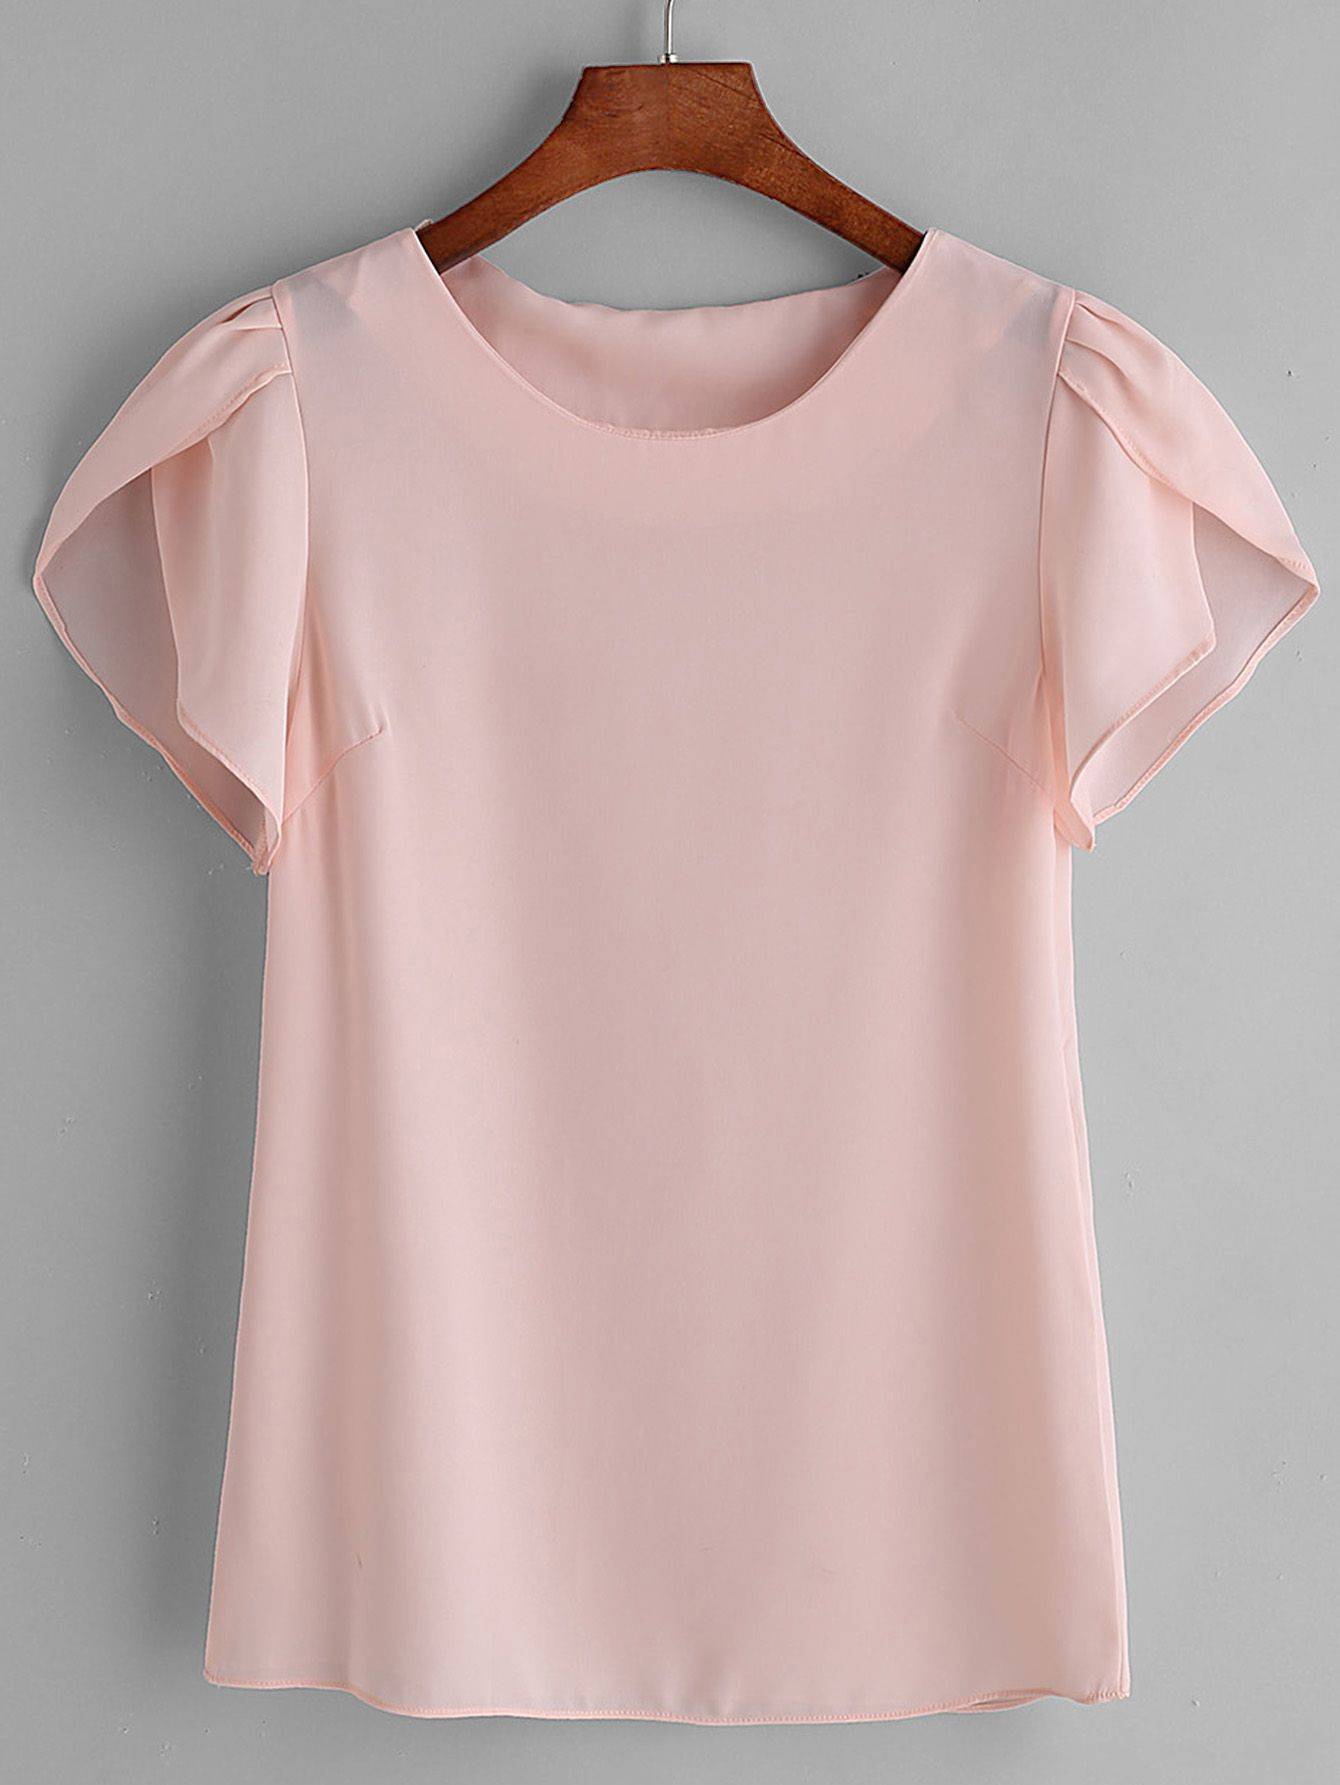 57025271638a Shop Pink Pleated Cap Sleeve Chiffon Blouse online. SheIn offers ...